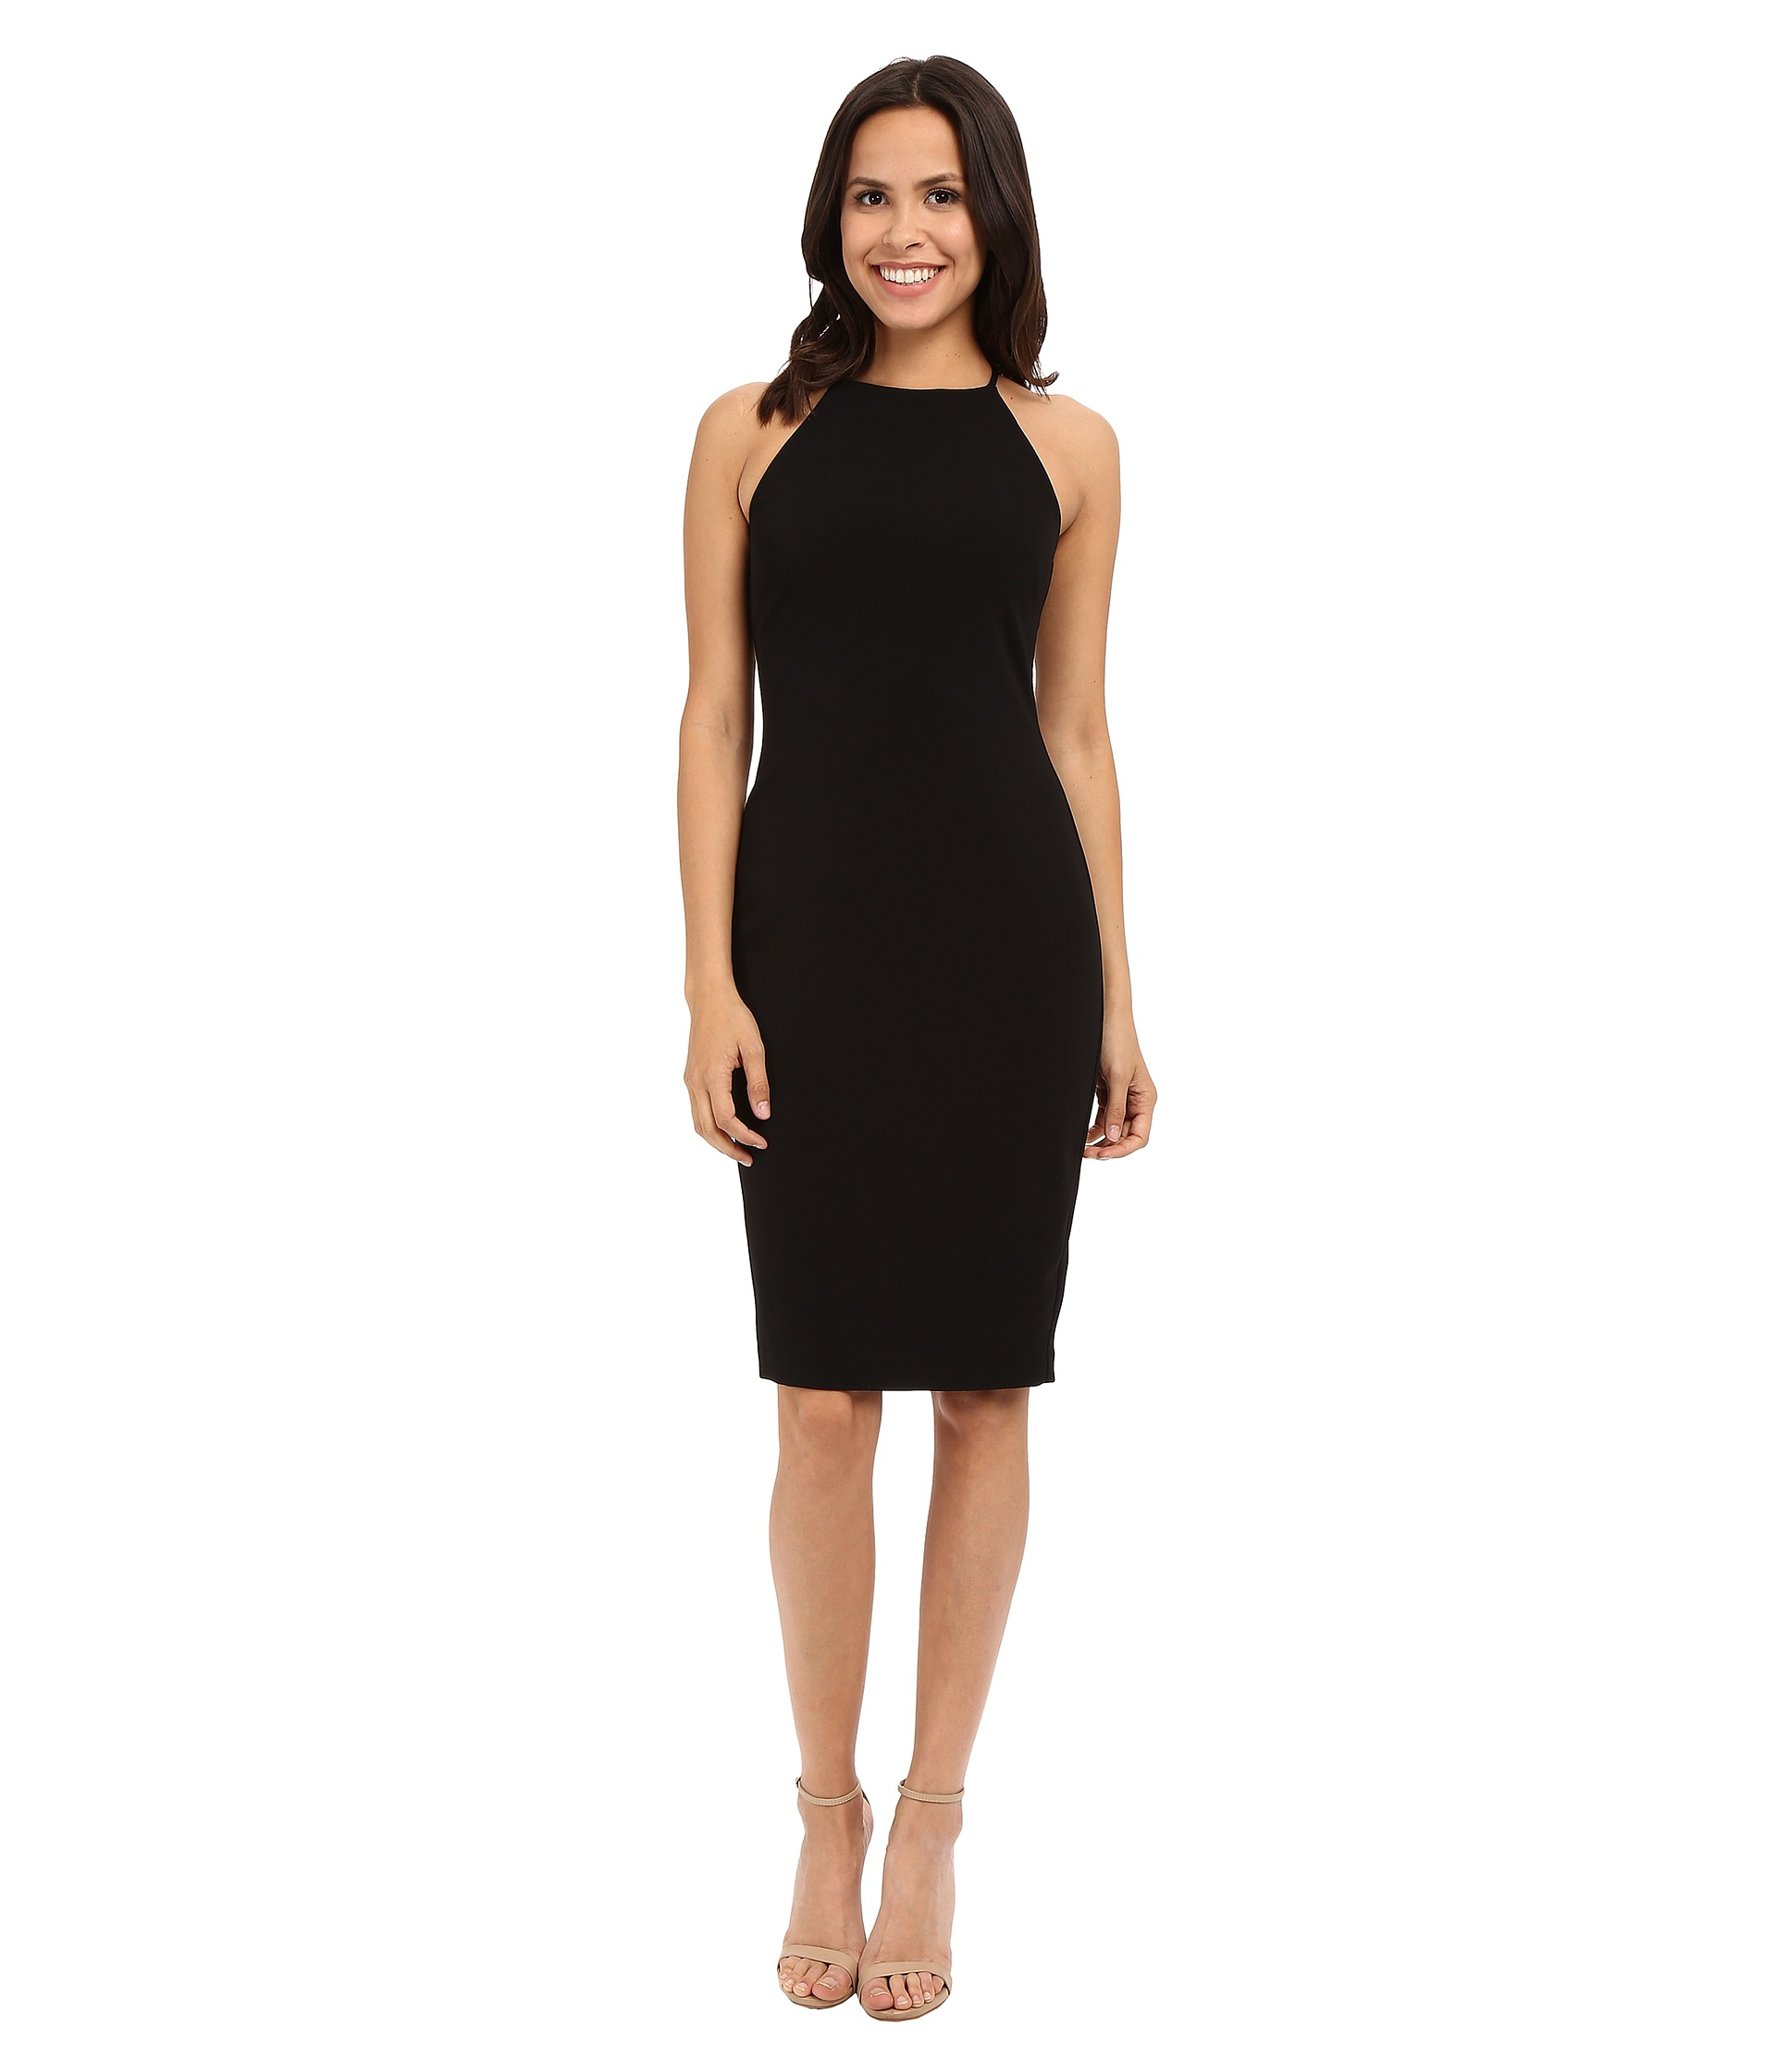 Black Cocktail Dresses Zappos Dress On Sale